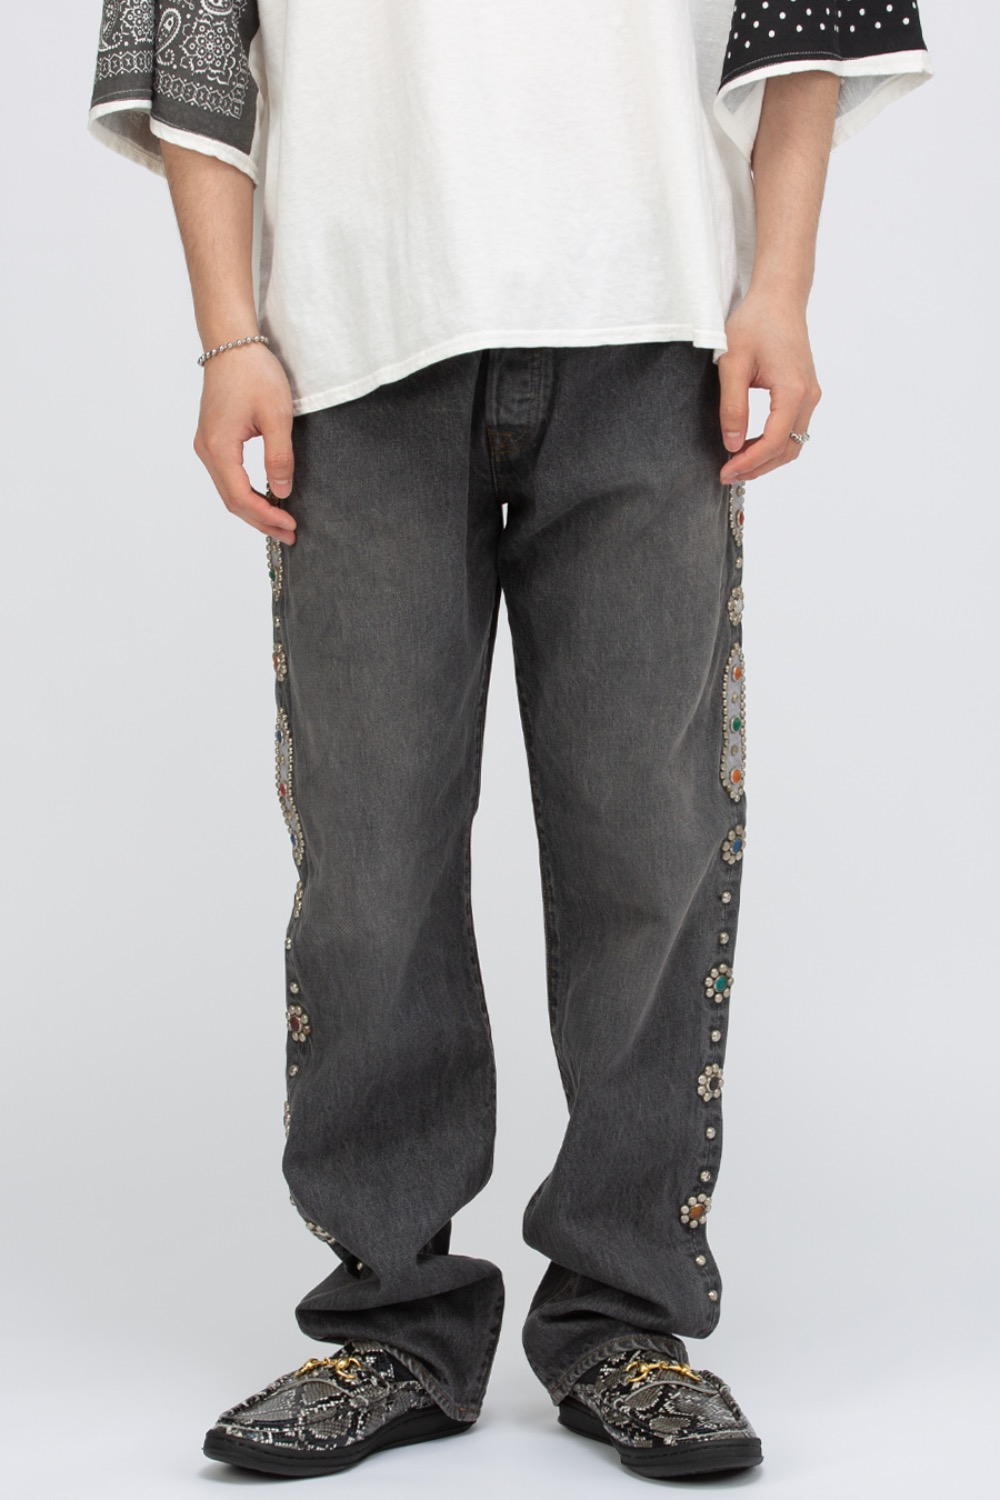 14OZ BLK DENIM 5P MONKEY CISCO(STUDS)